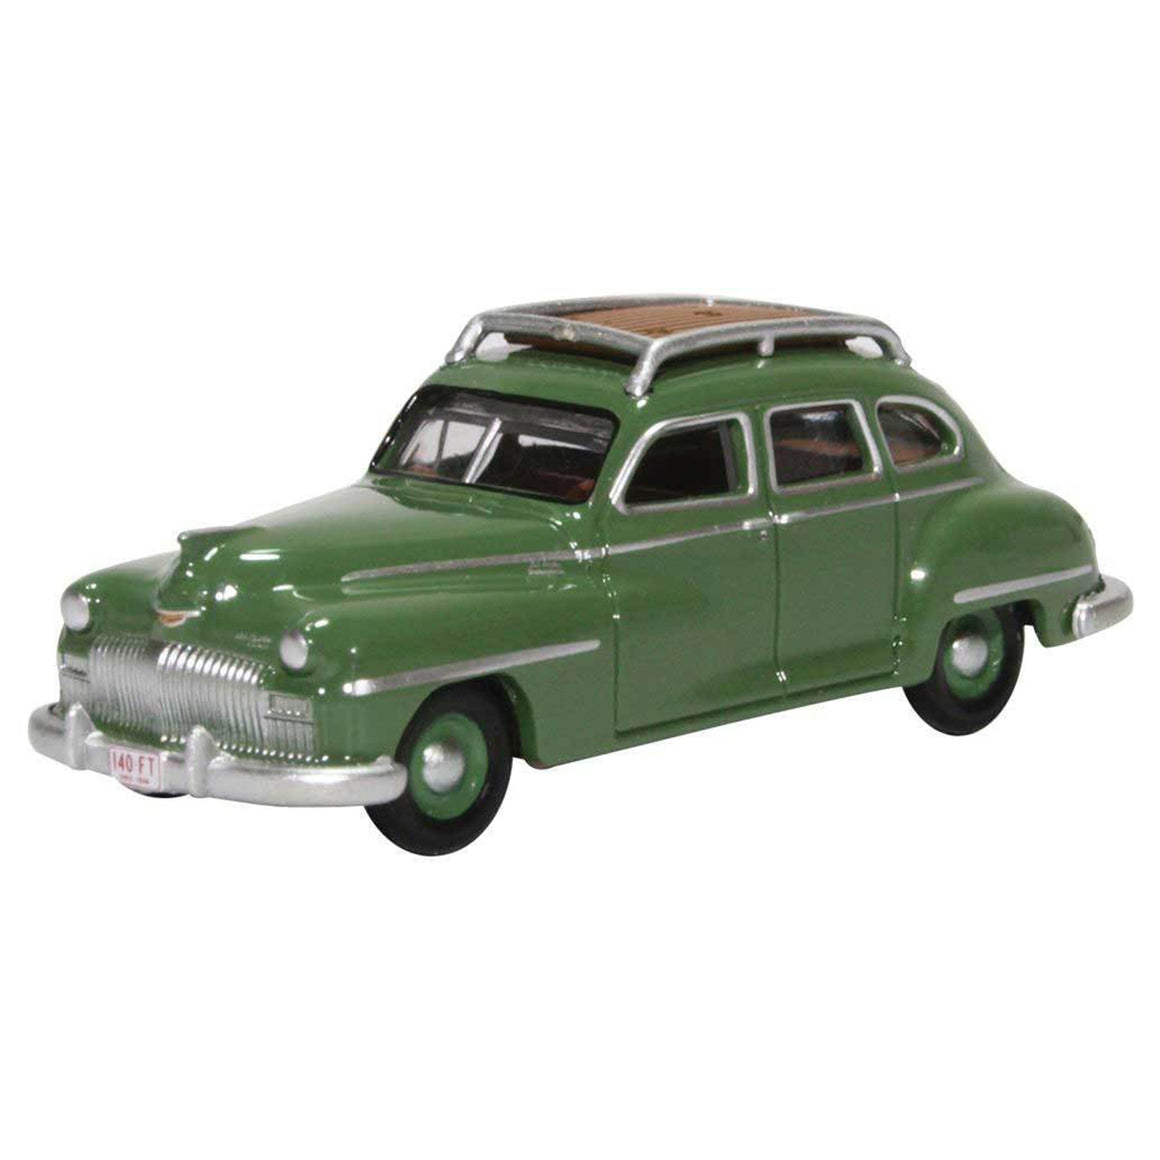 HO Scale: 1946-1948 Desoto Suburban Sedan - Noel Green